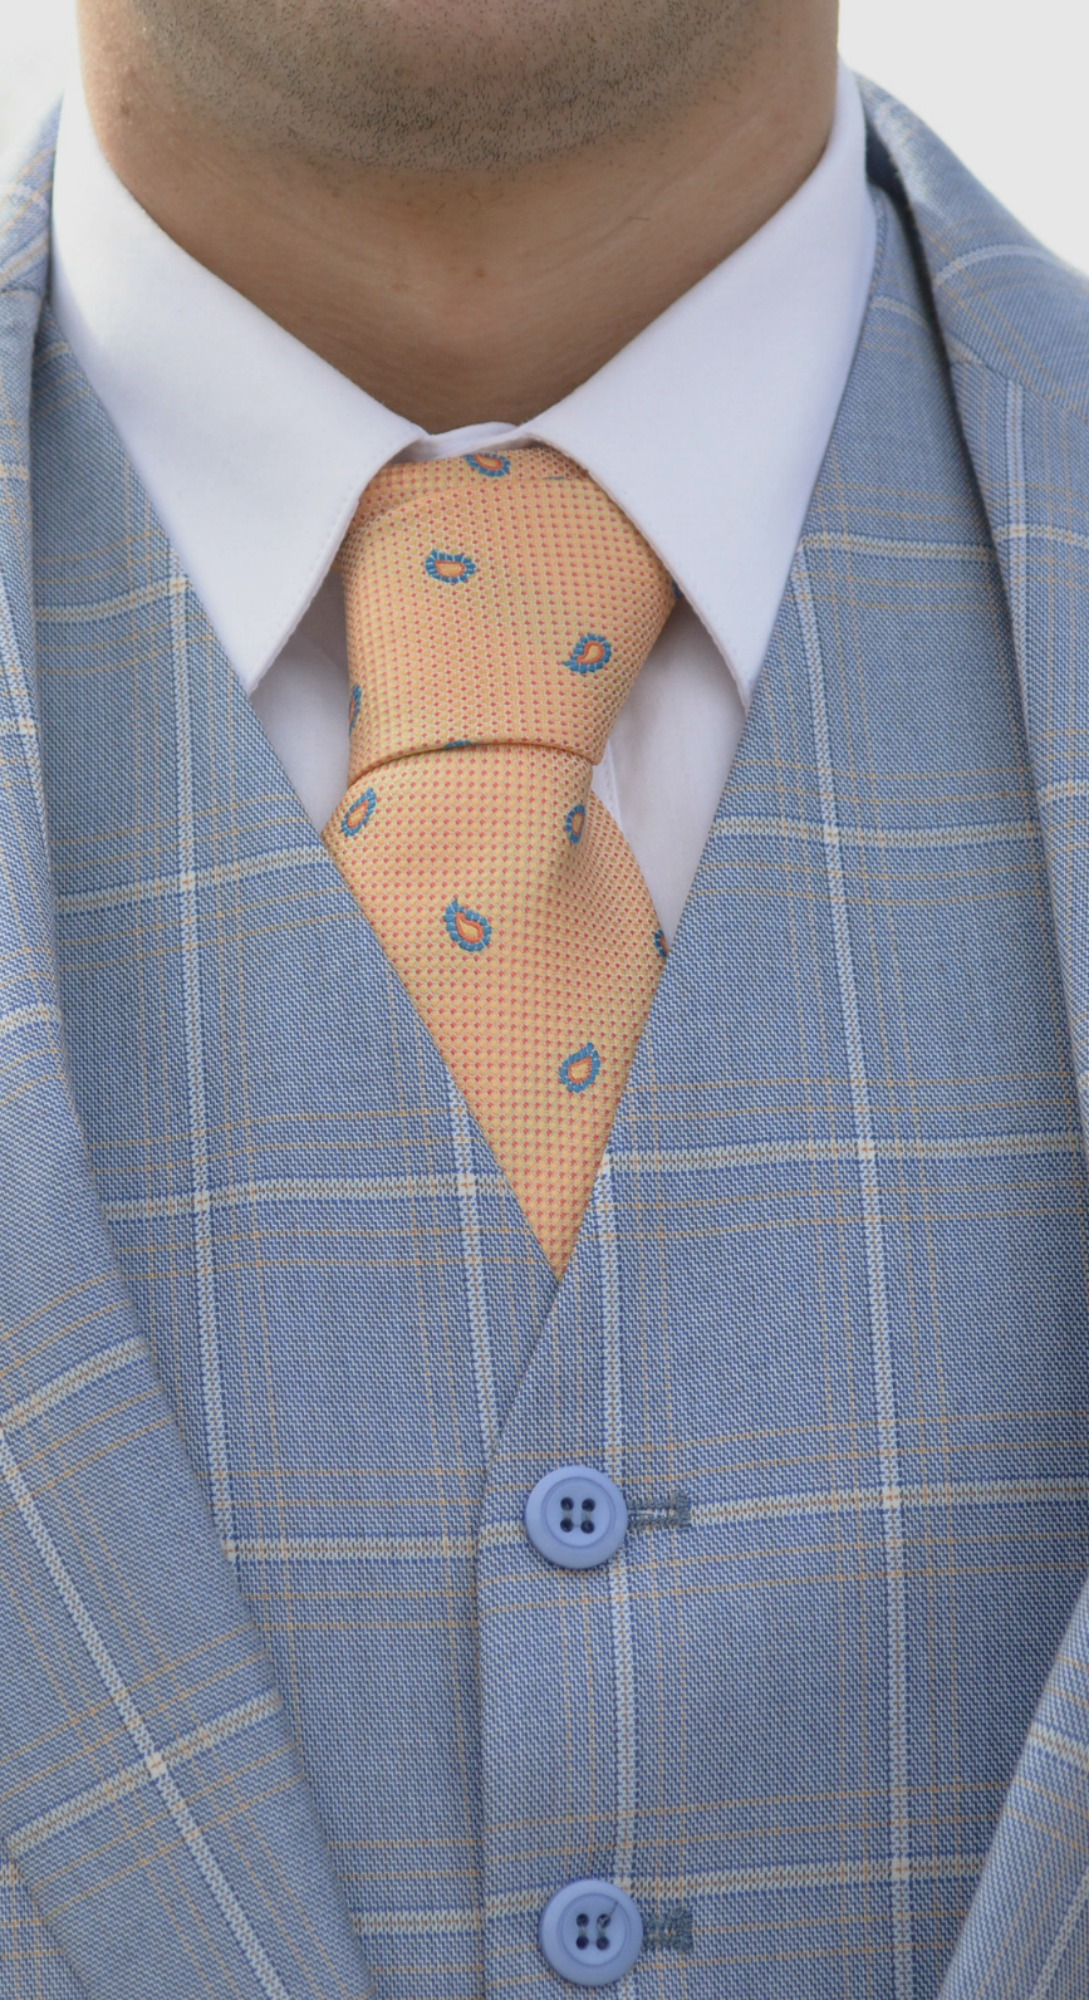 Light Blue Suit and Peach Tie